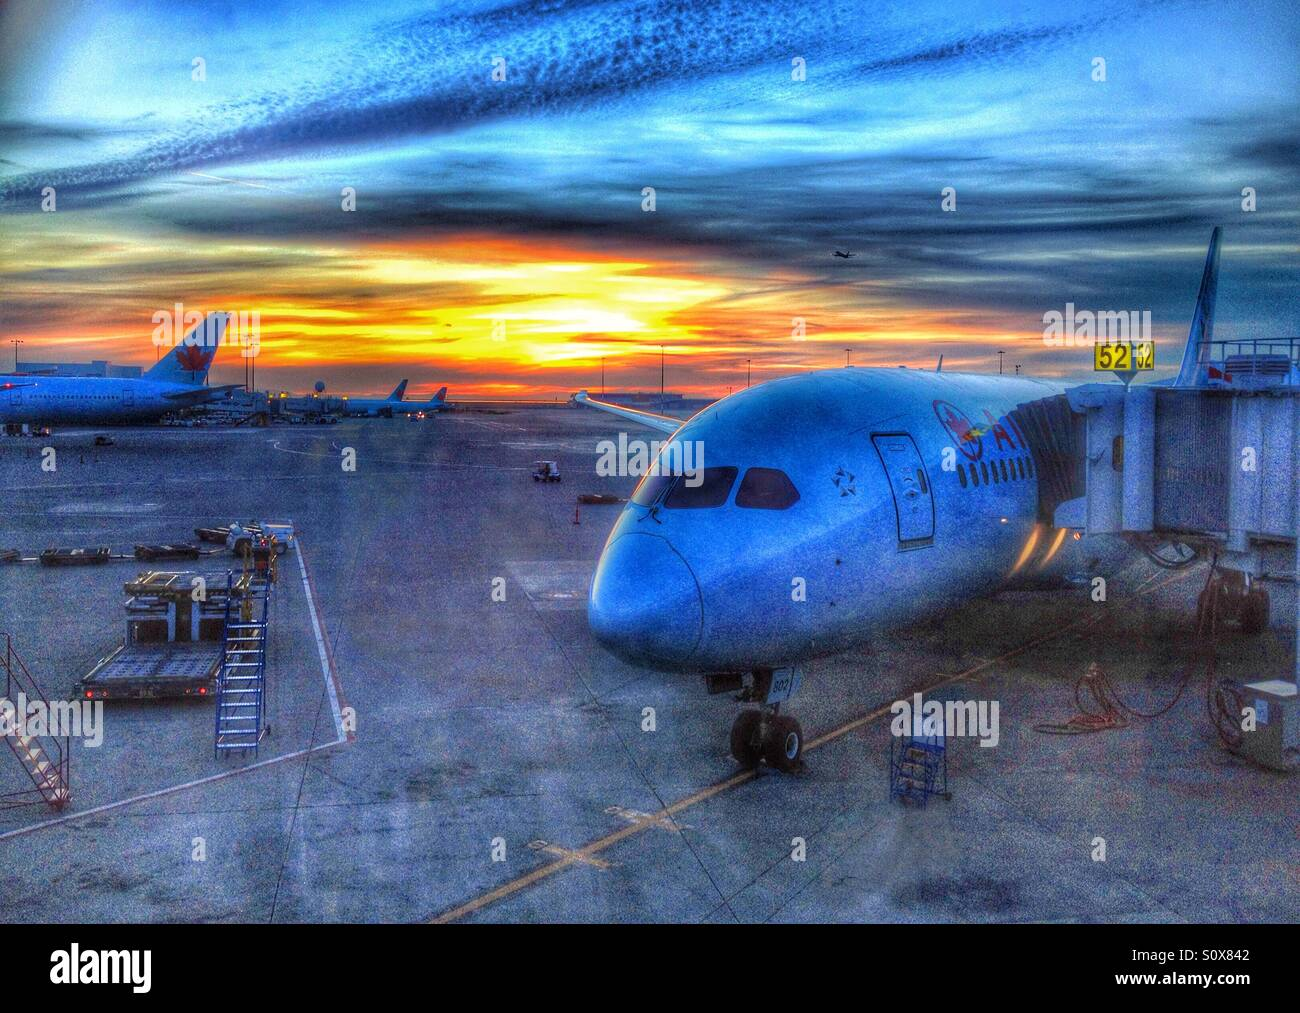 airplane-parked-at-vancouver-airport-at-